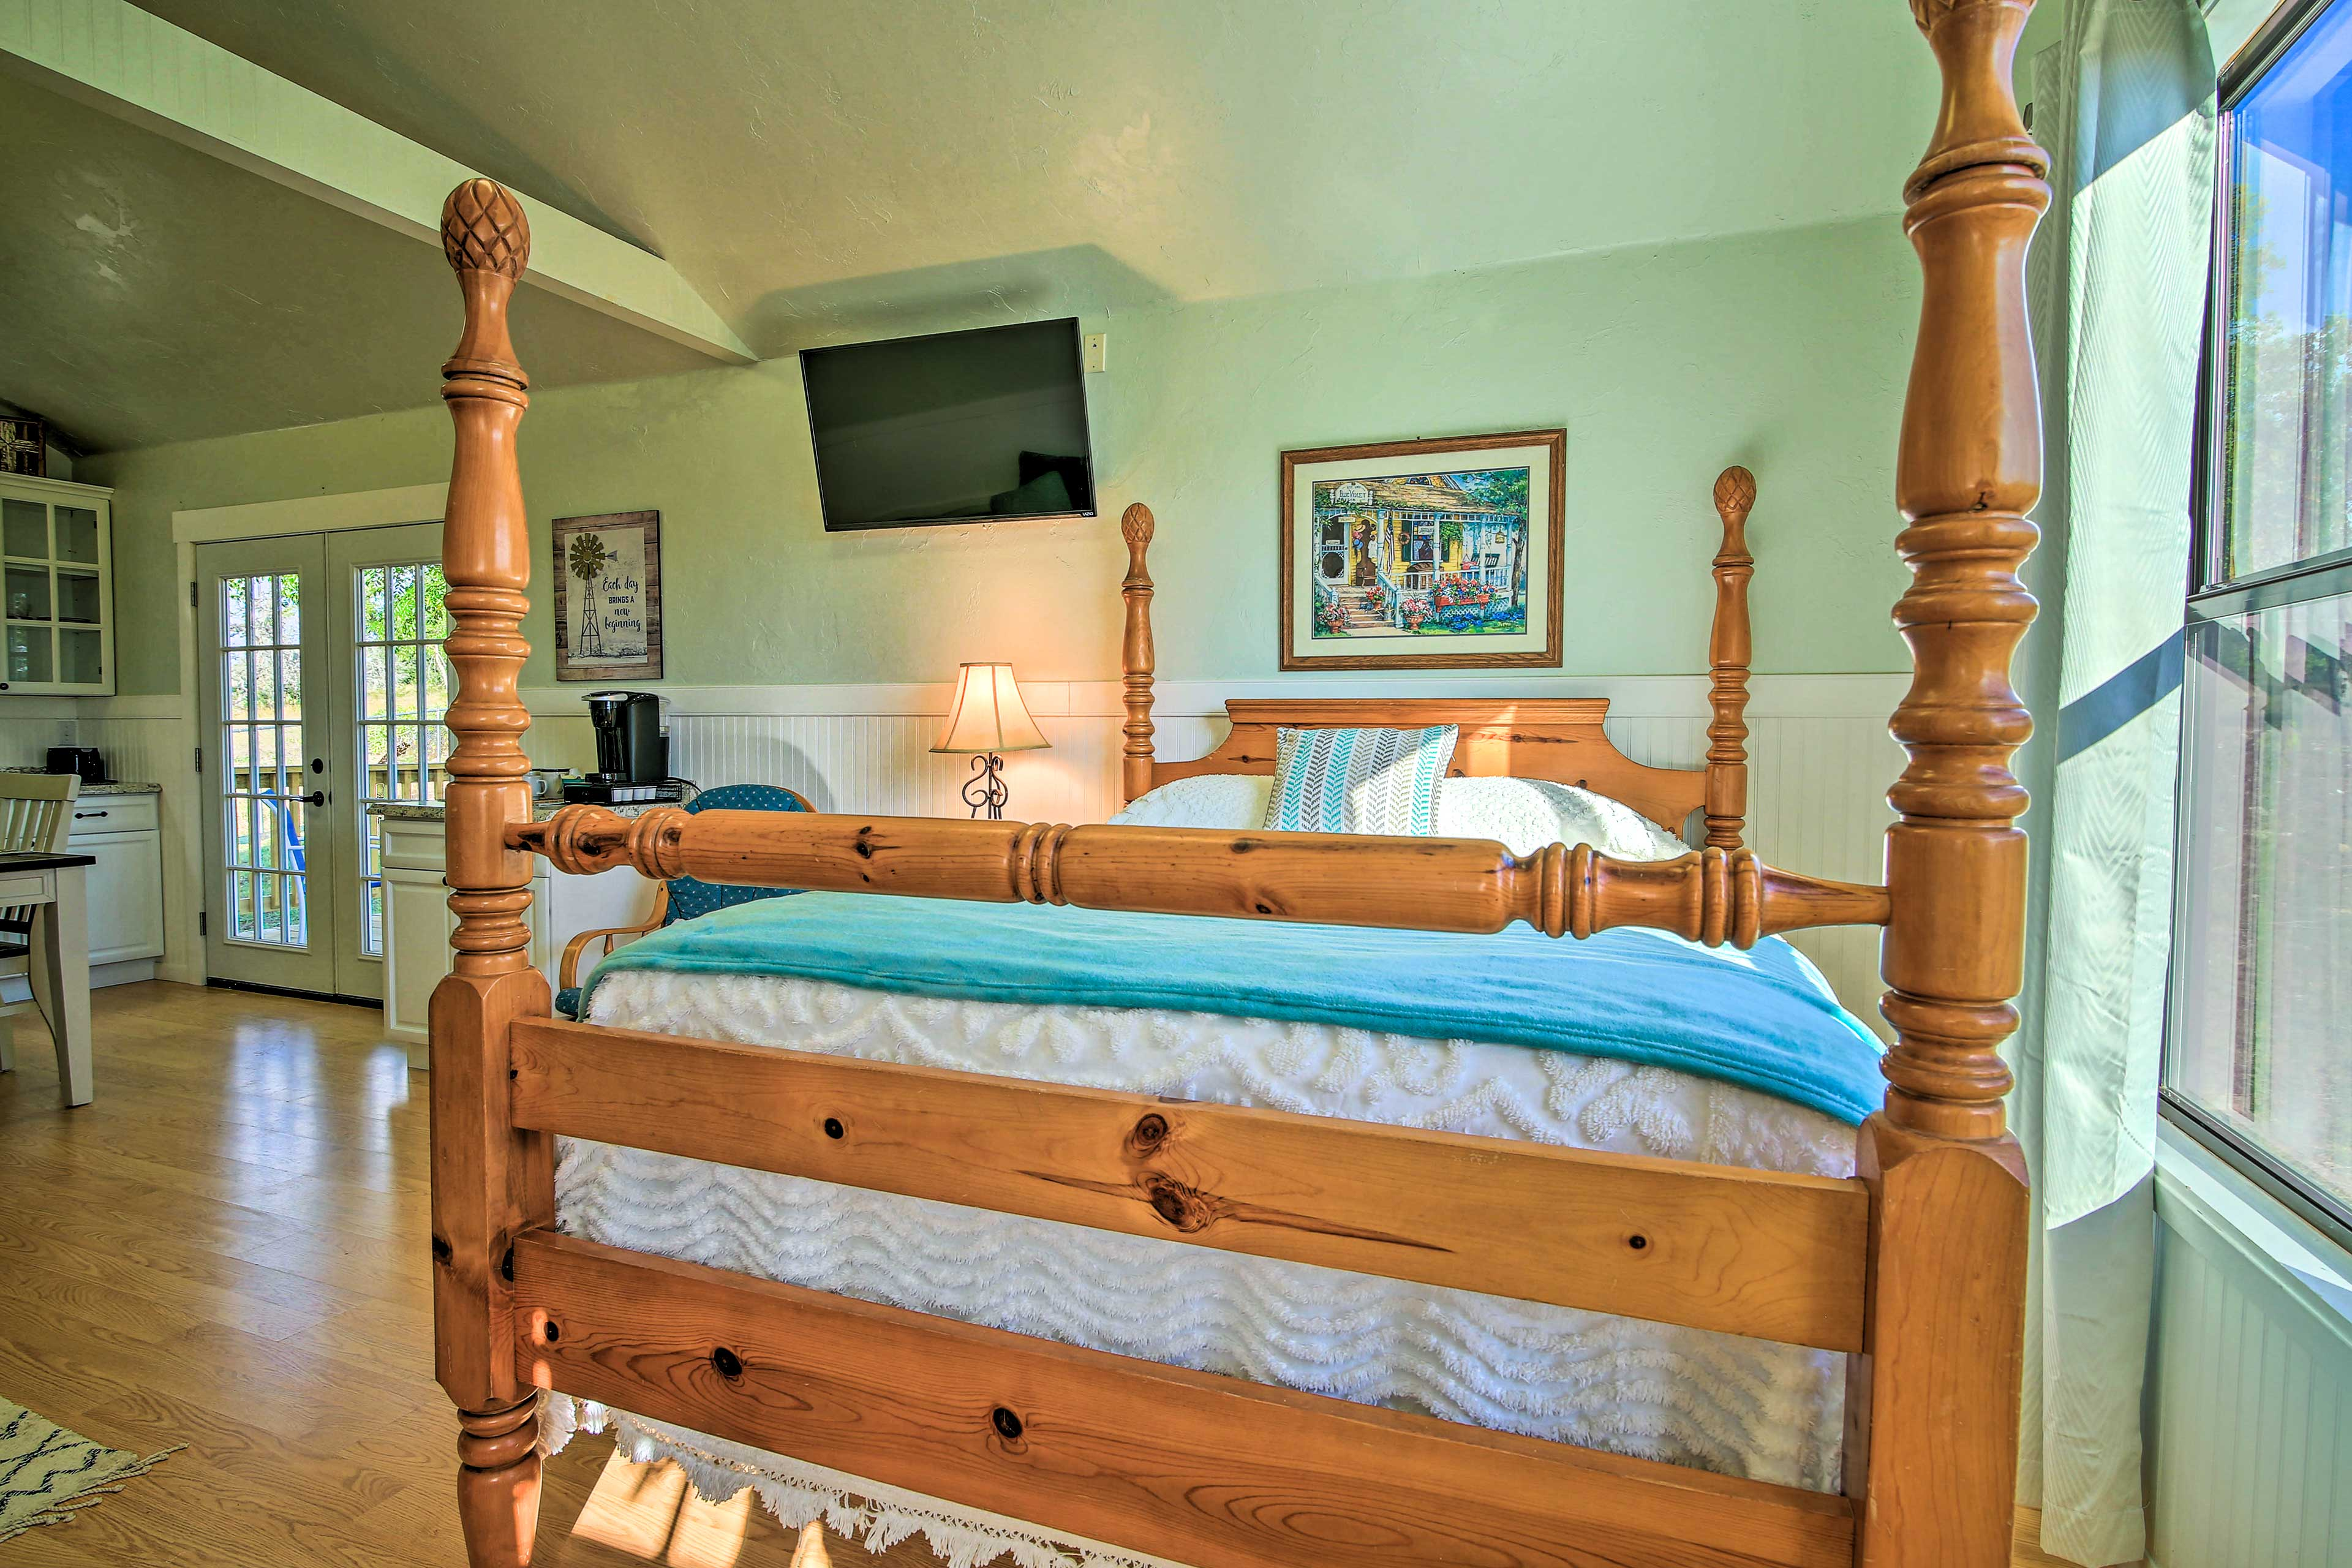 The cabin also offers a queen-sized bed for 2.